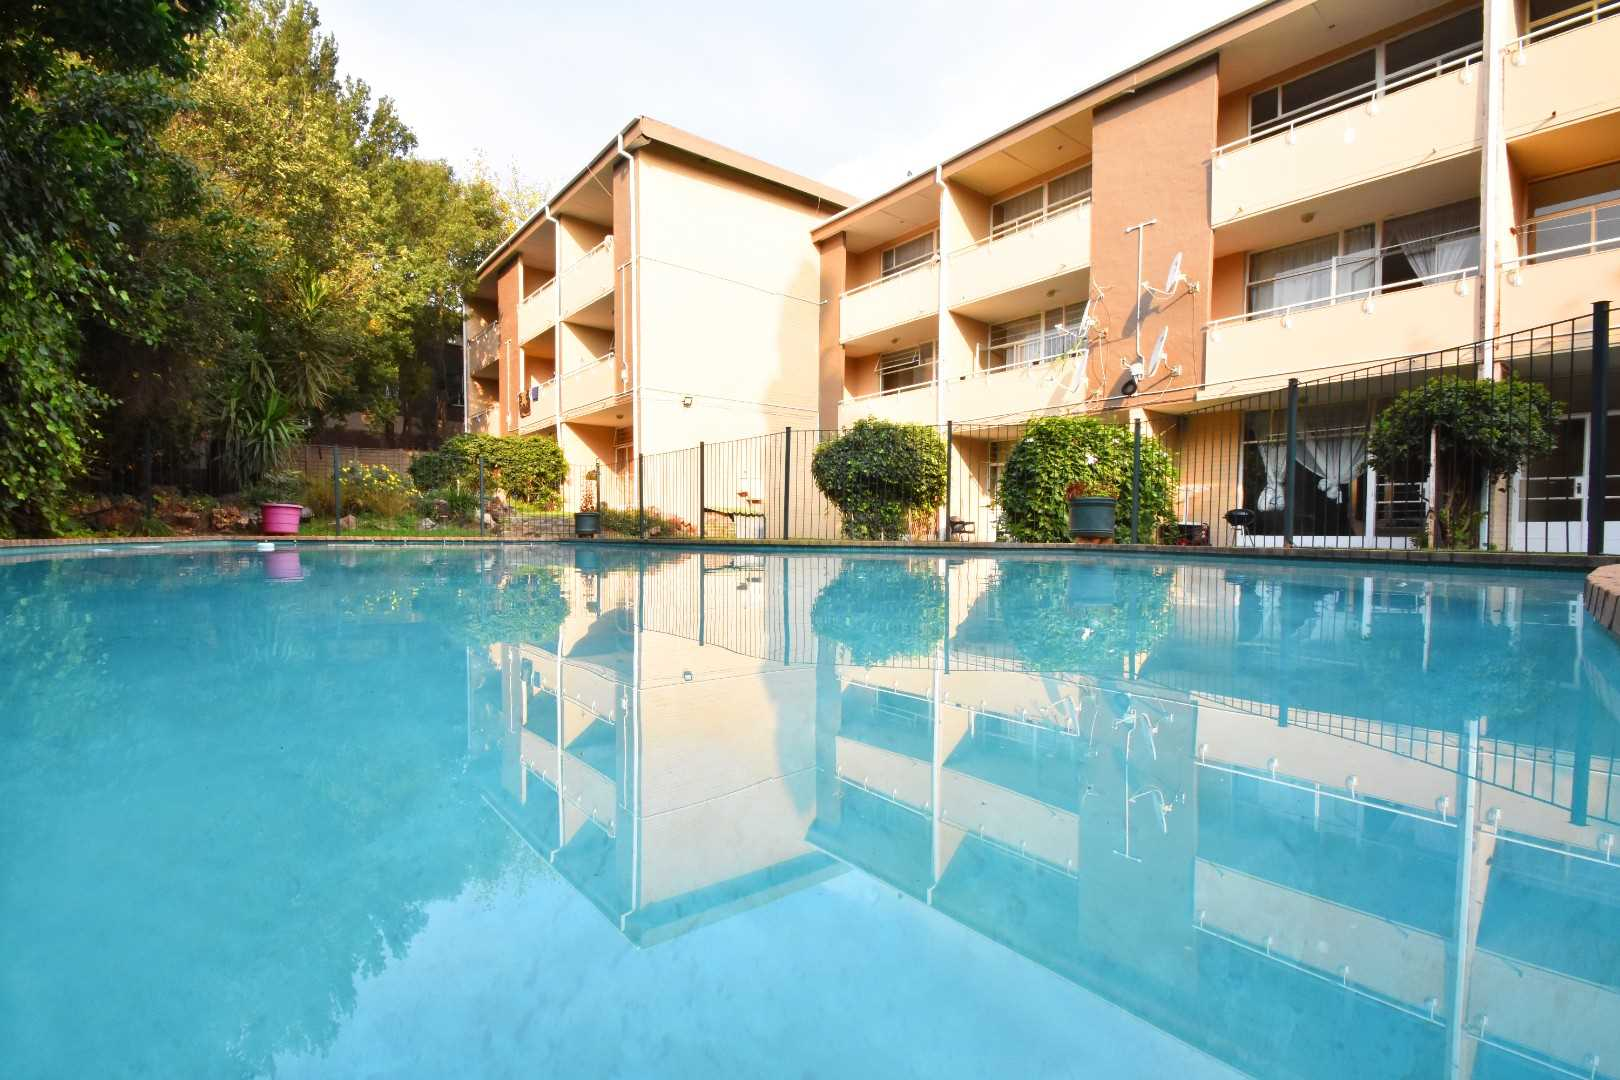 Neat well maintained, excellent management, and great communal garden and swimming pool.